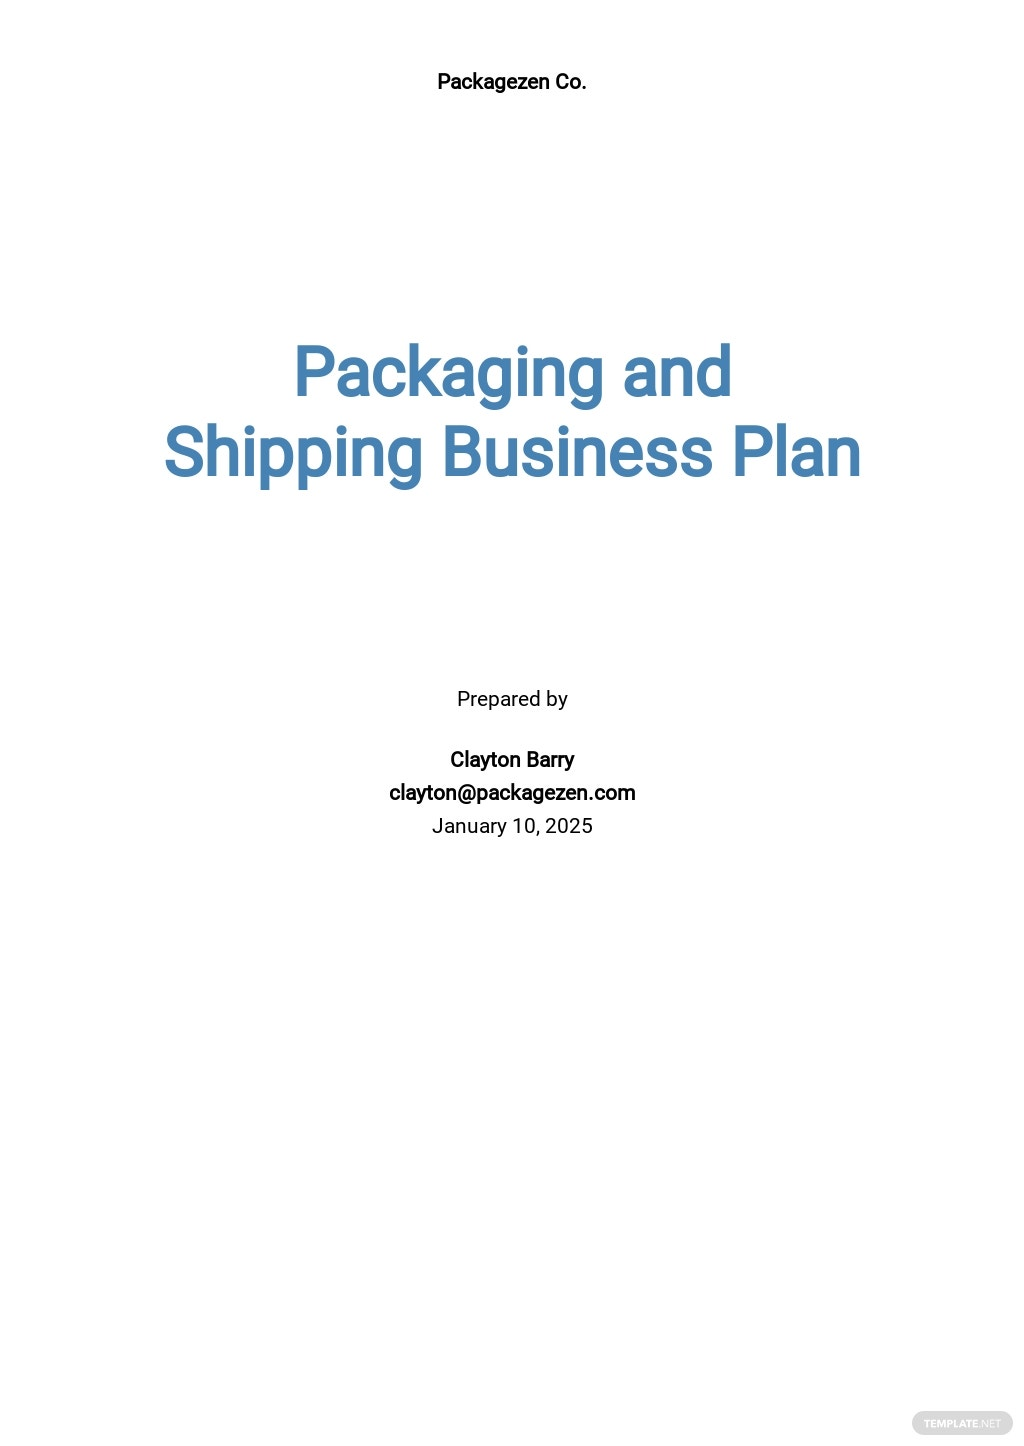 Packaging and Shipping Business Plan Template